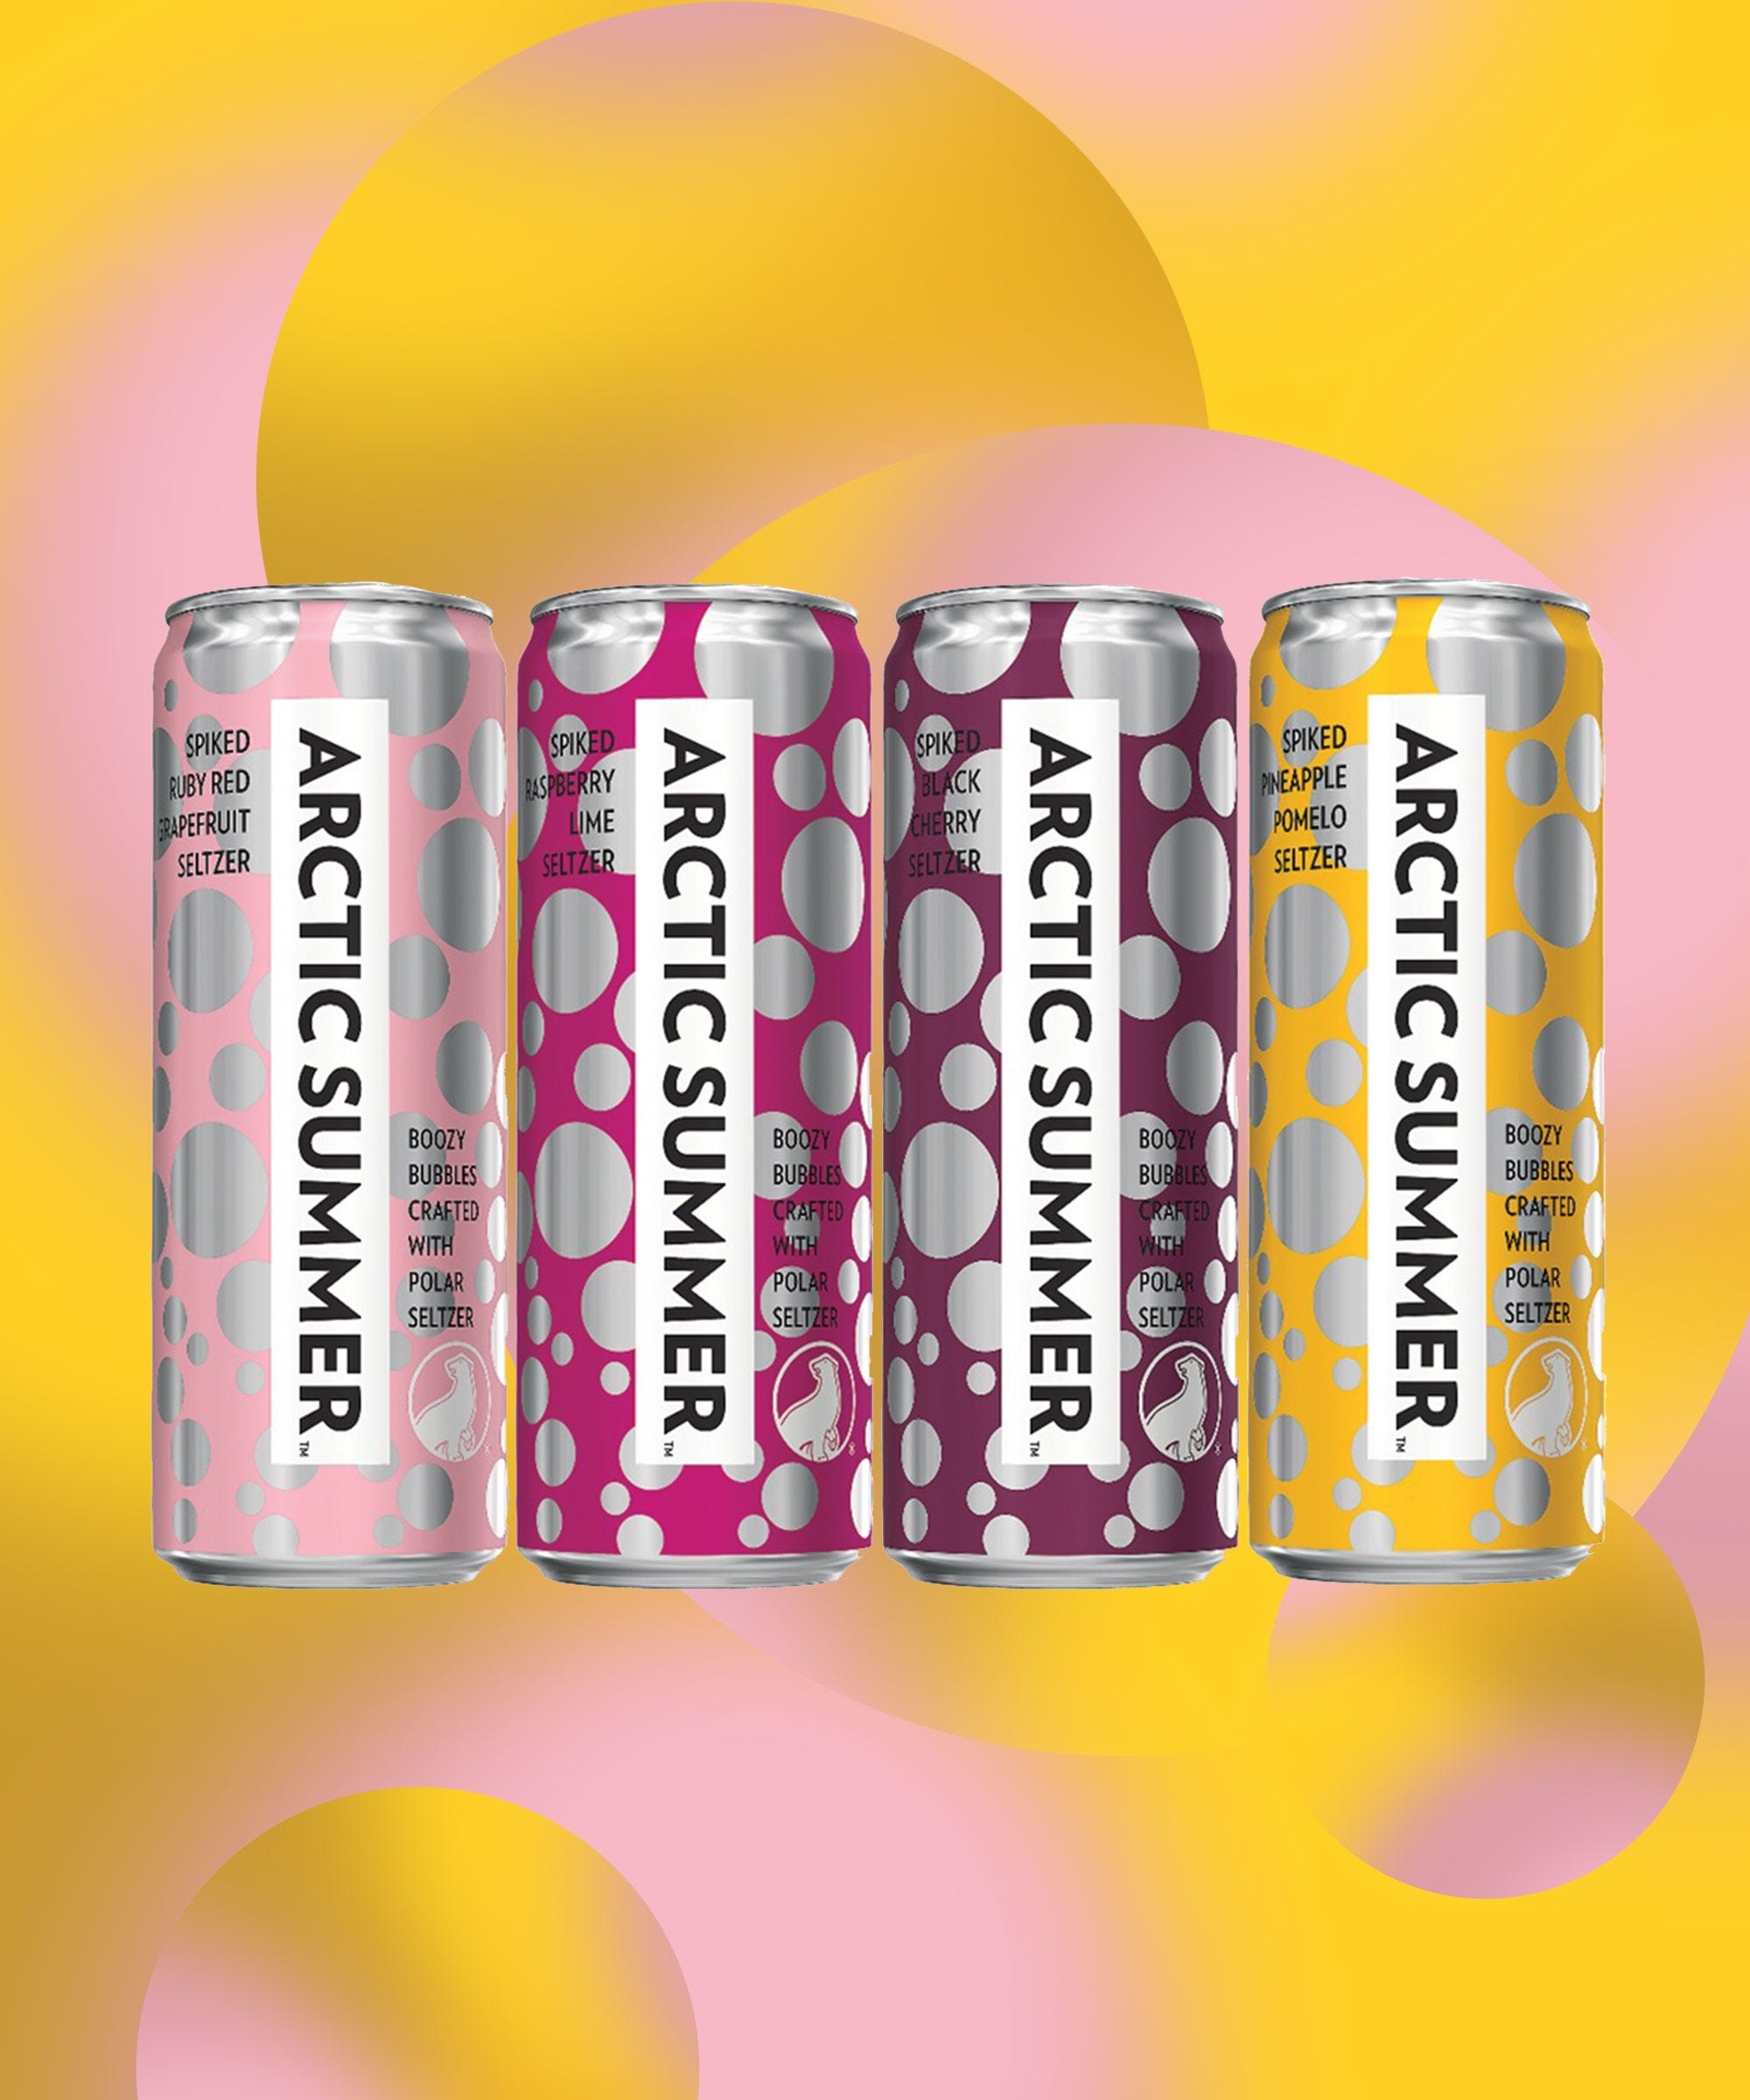 19 Spiked Seltzer Brands To Sip On This Summer